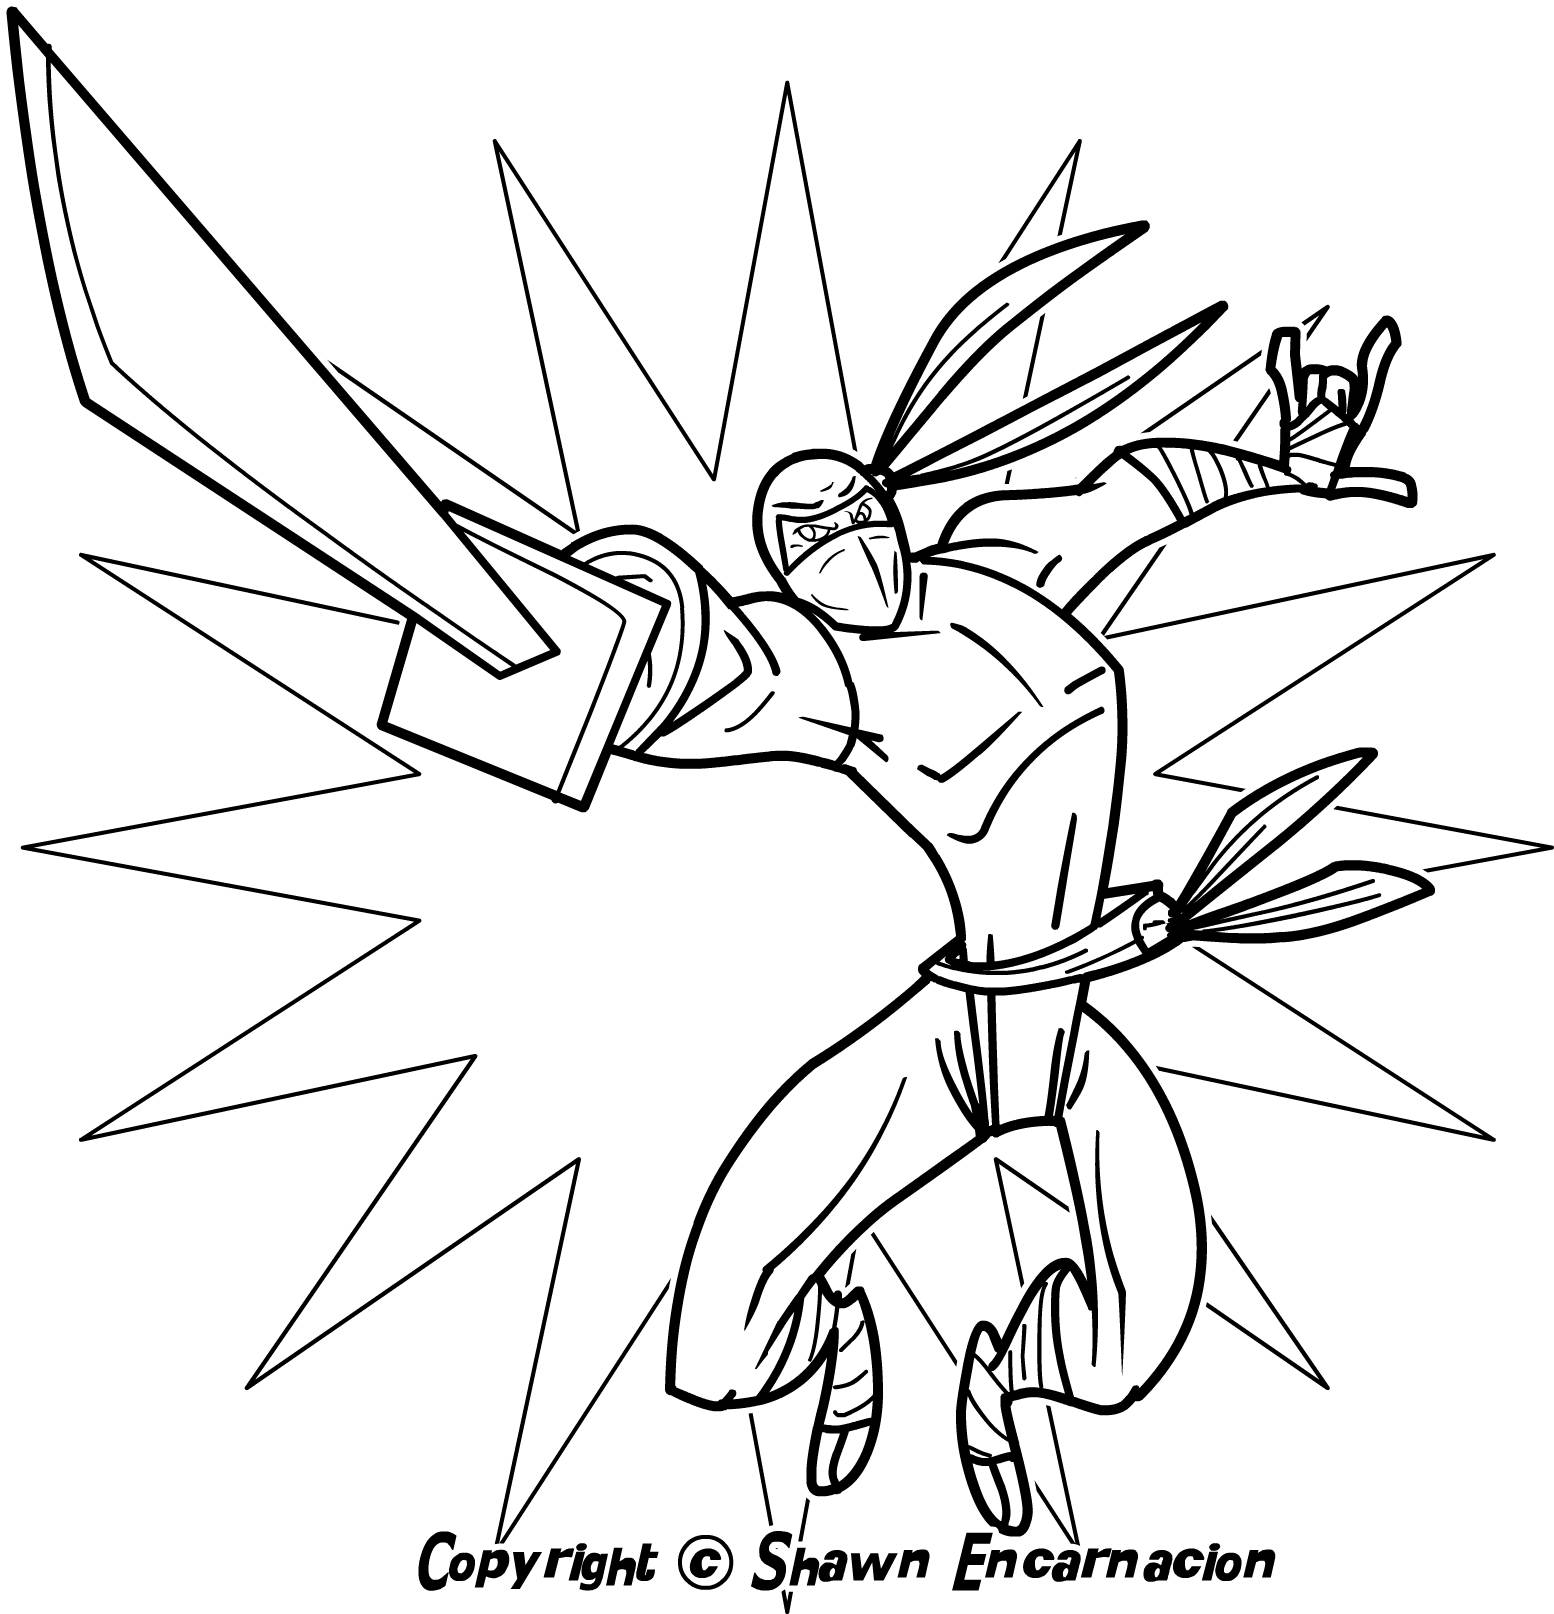 Ninja coloring pages to download and print for free